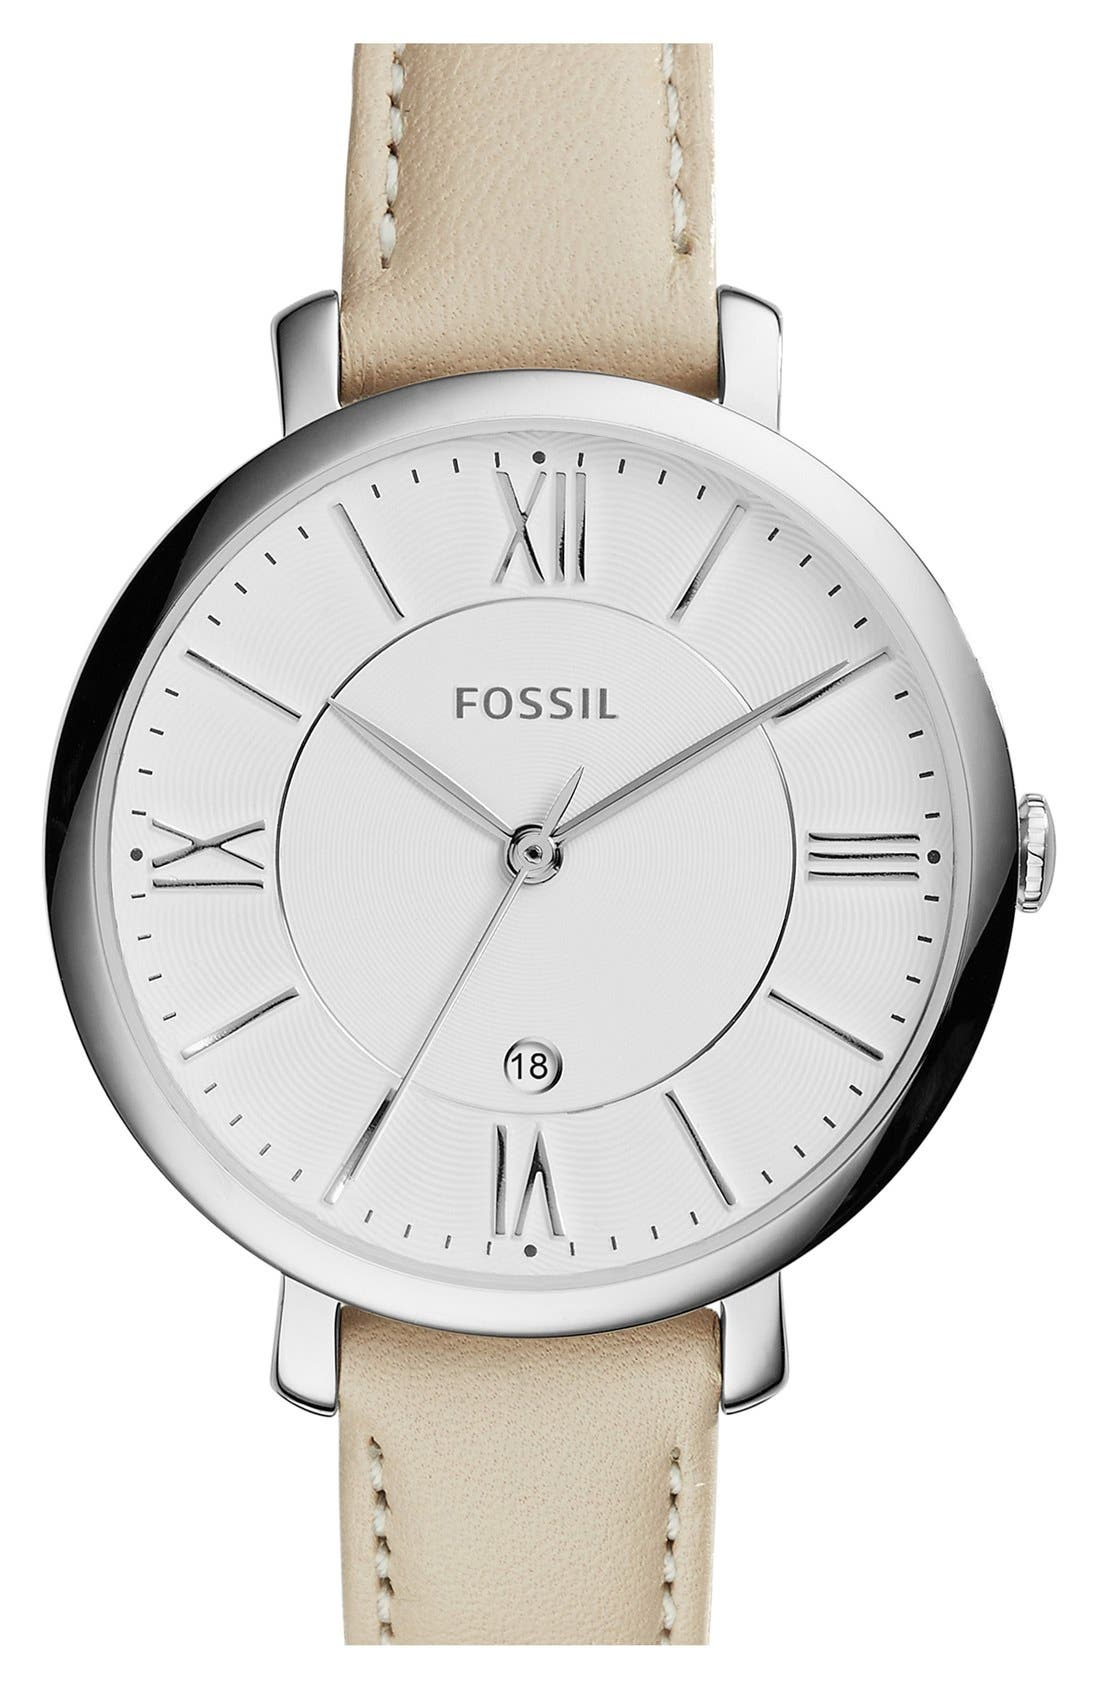 FOSSIL 'Jacqueline' Round Leather Strap Watch, 36mm, Main, color, WHITE/ SILVER